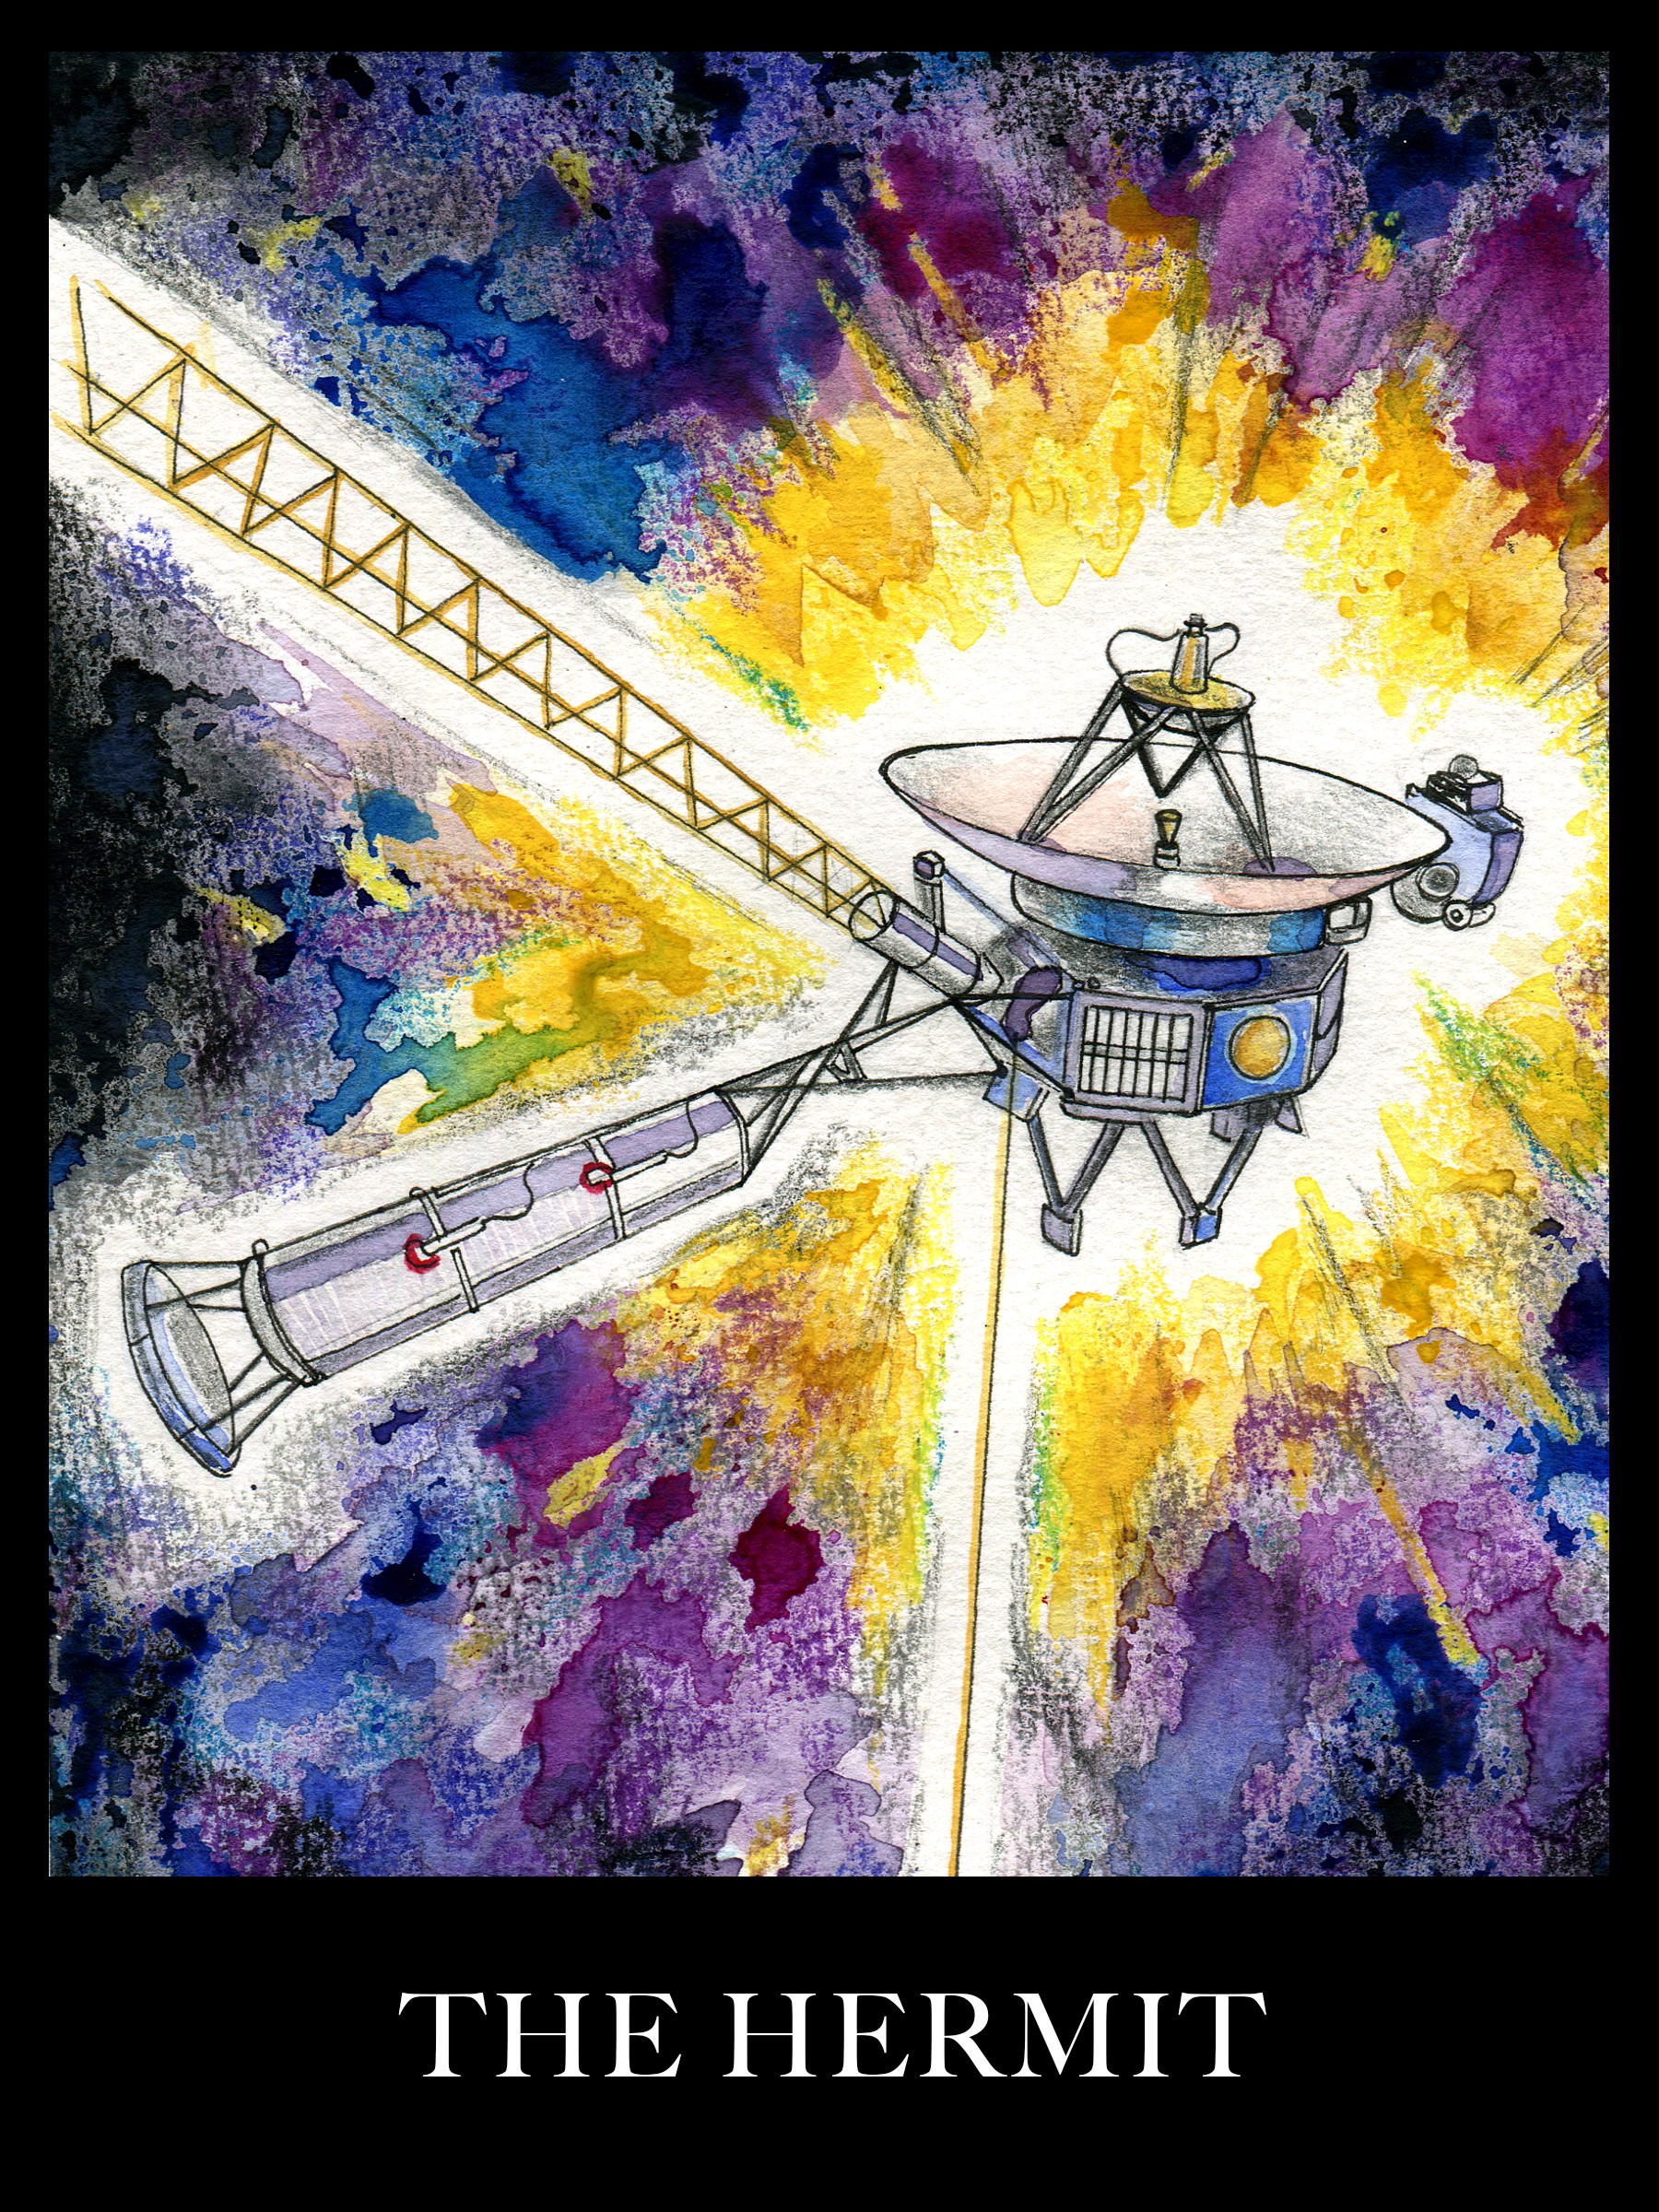 A watercolor painting of the Voyager spacecraft